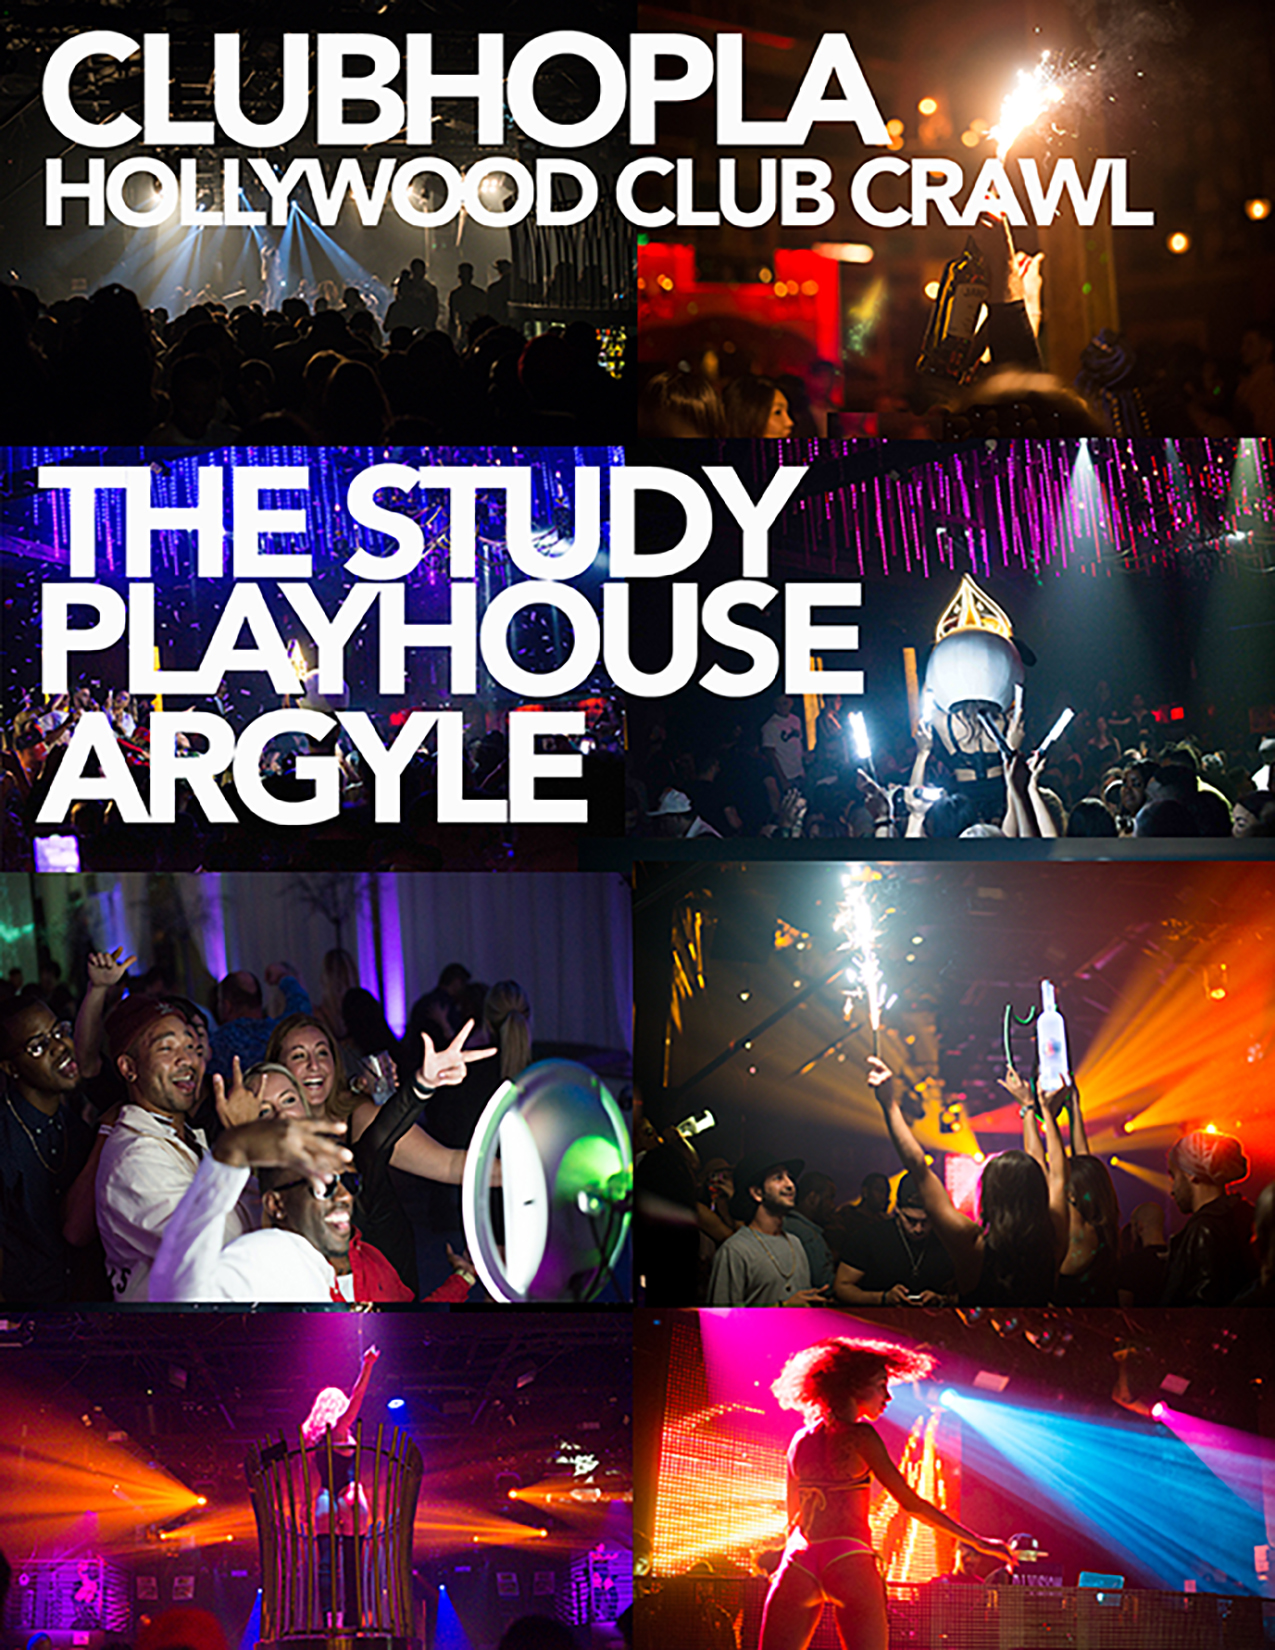 3 CLUBS IN ONE NIGHT . $25 PRESALE / $30 AT THE EVENT. PICK UP WRISTBANDS AT THE 1ST CLUB - THE STUDY 6356 HOLLYWOOD BLVD